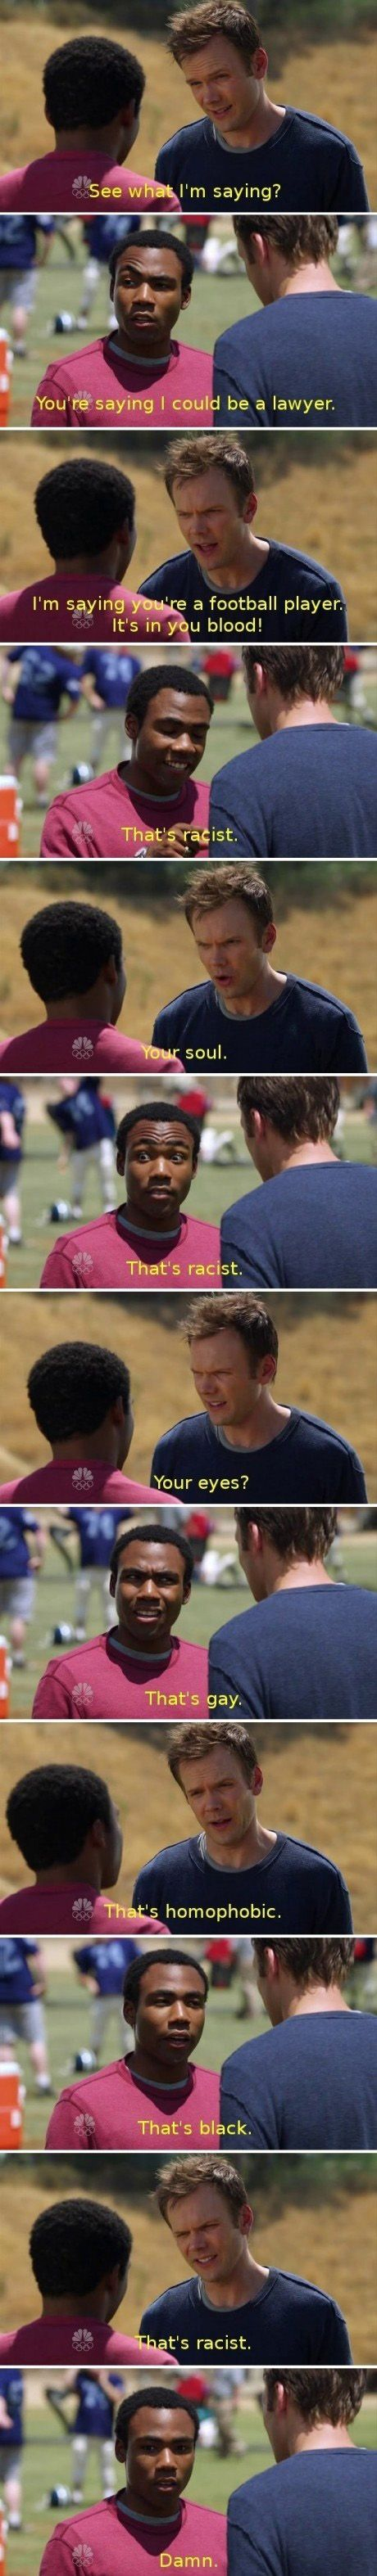 community...I can't remember if you got that far, but one of my favorite scenes ever